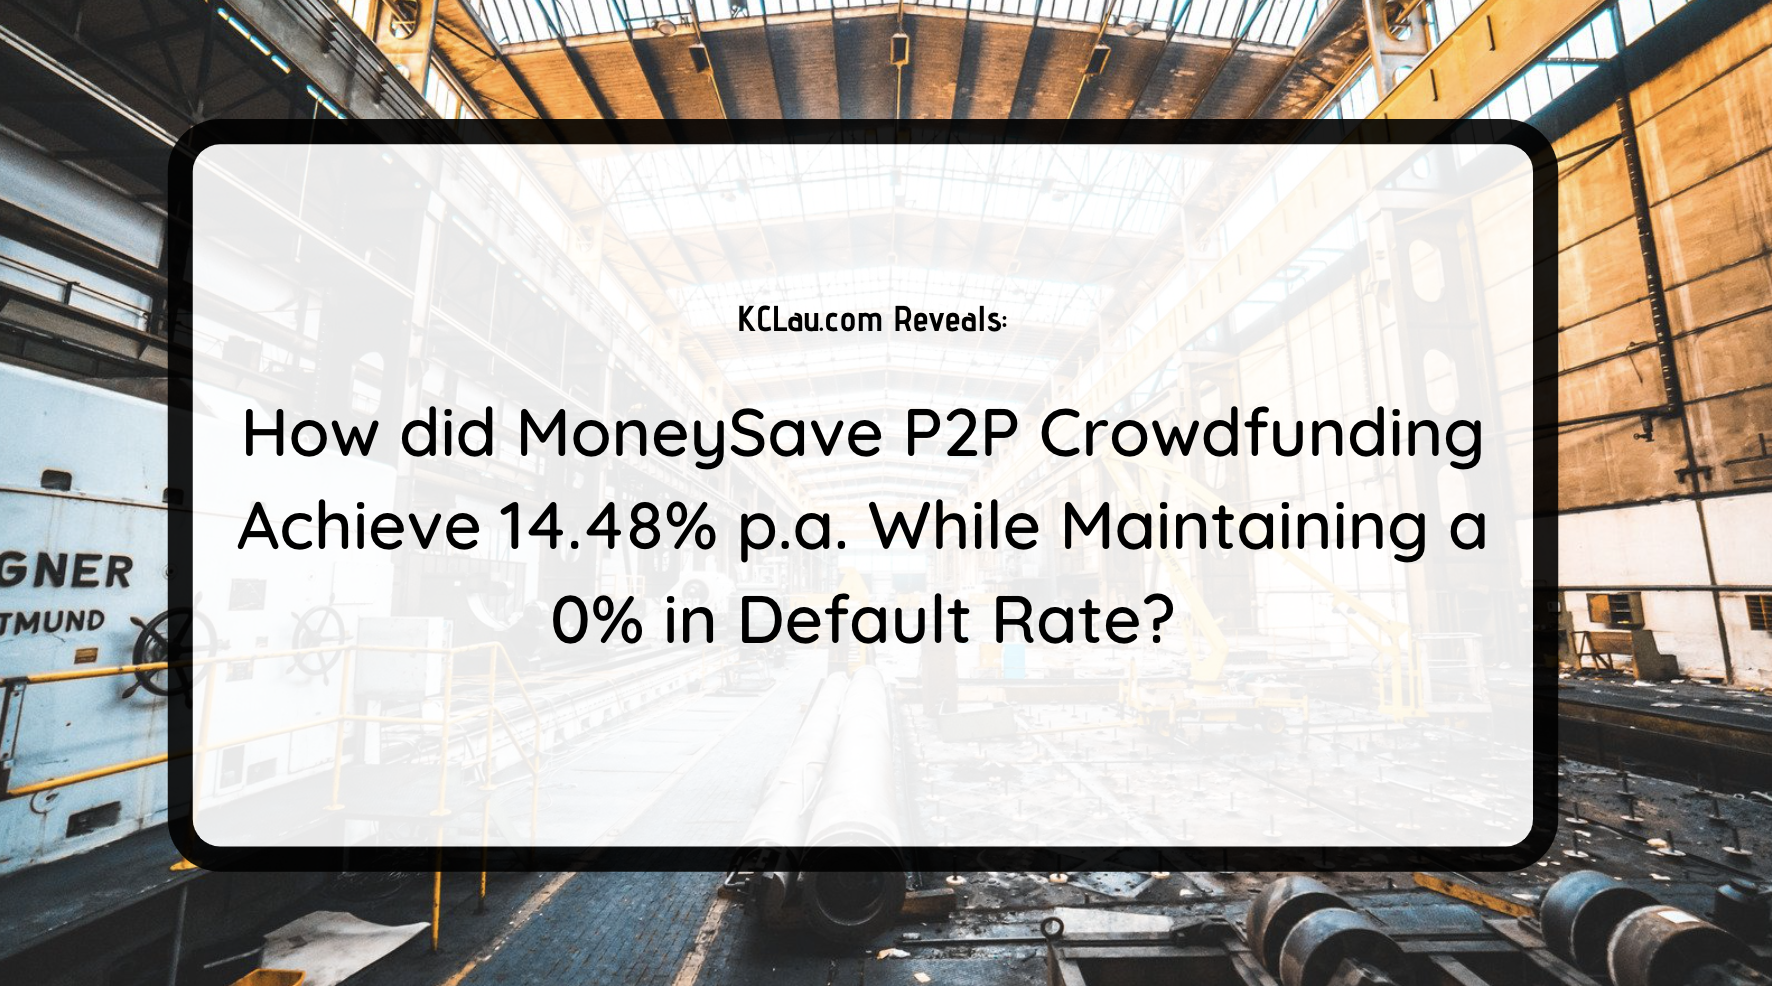 How did MoneySave P2P Crowdfunding Achieve 14.48% p.a. While Maintaining a 0% in Default Rate?